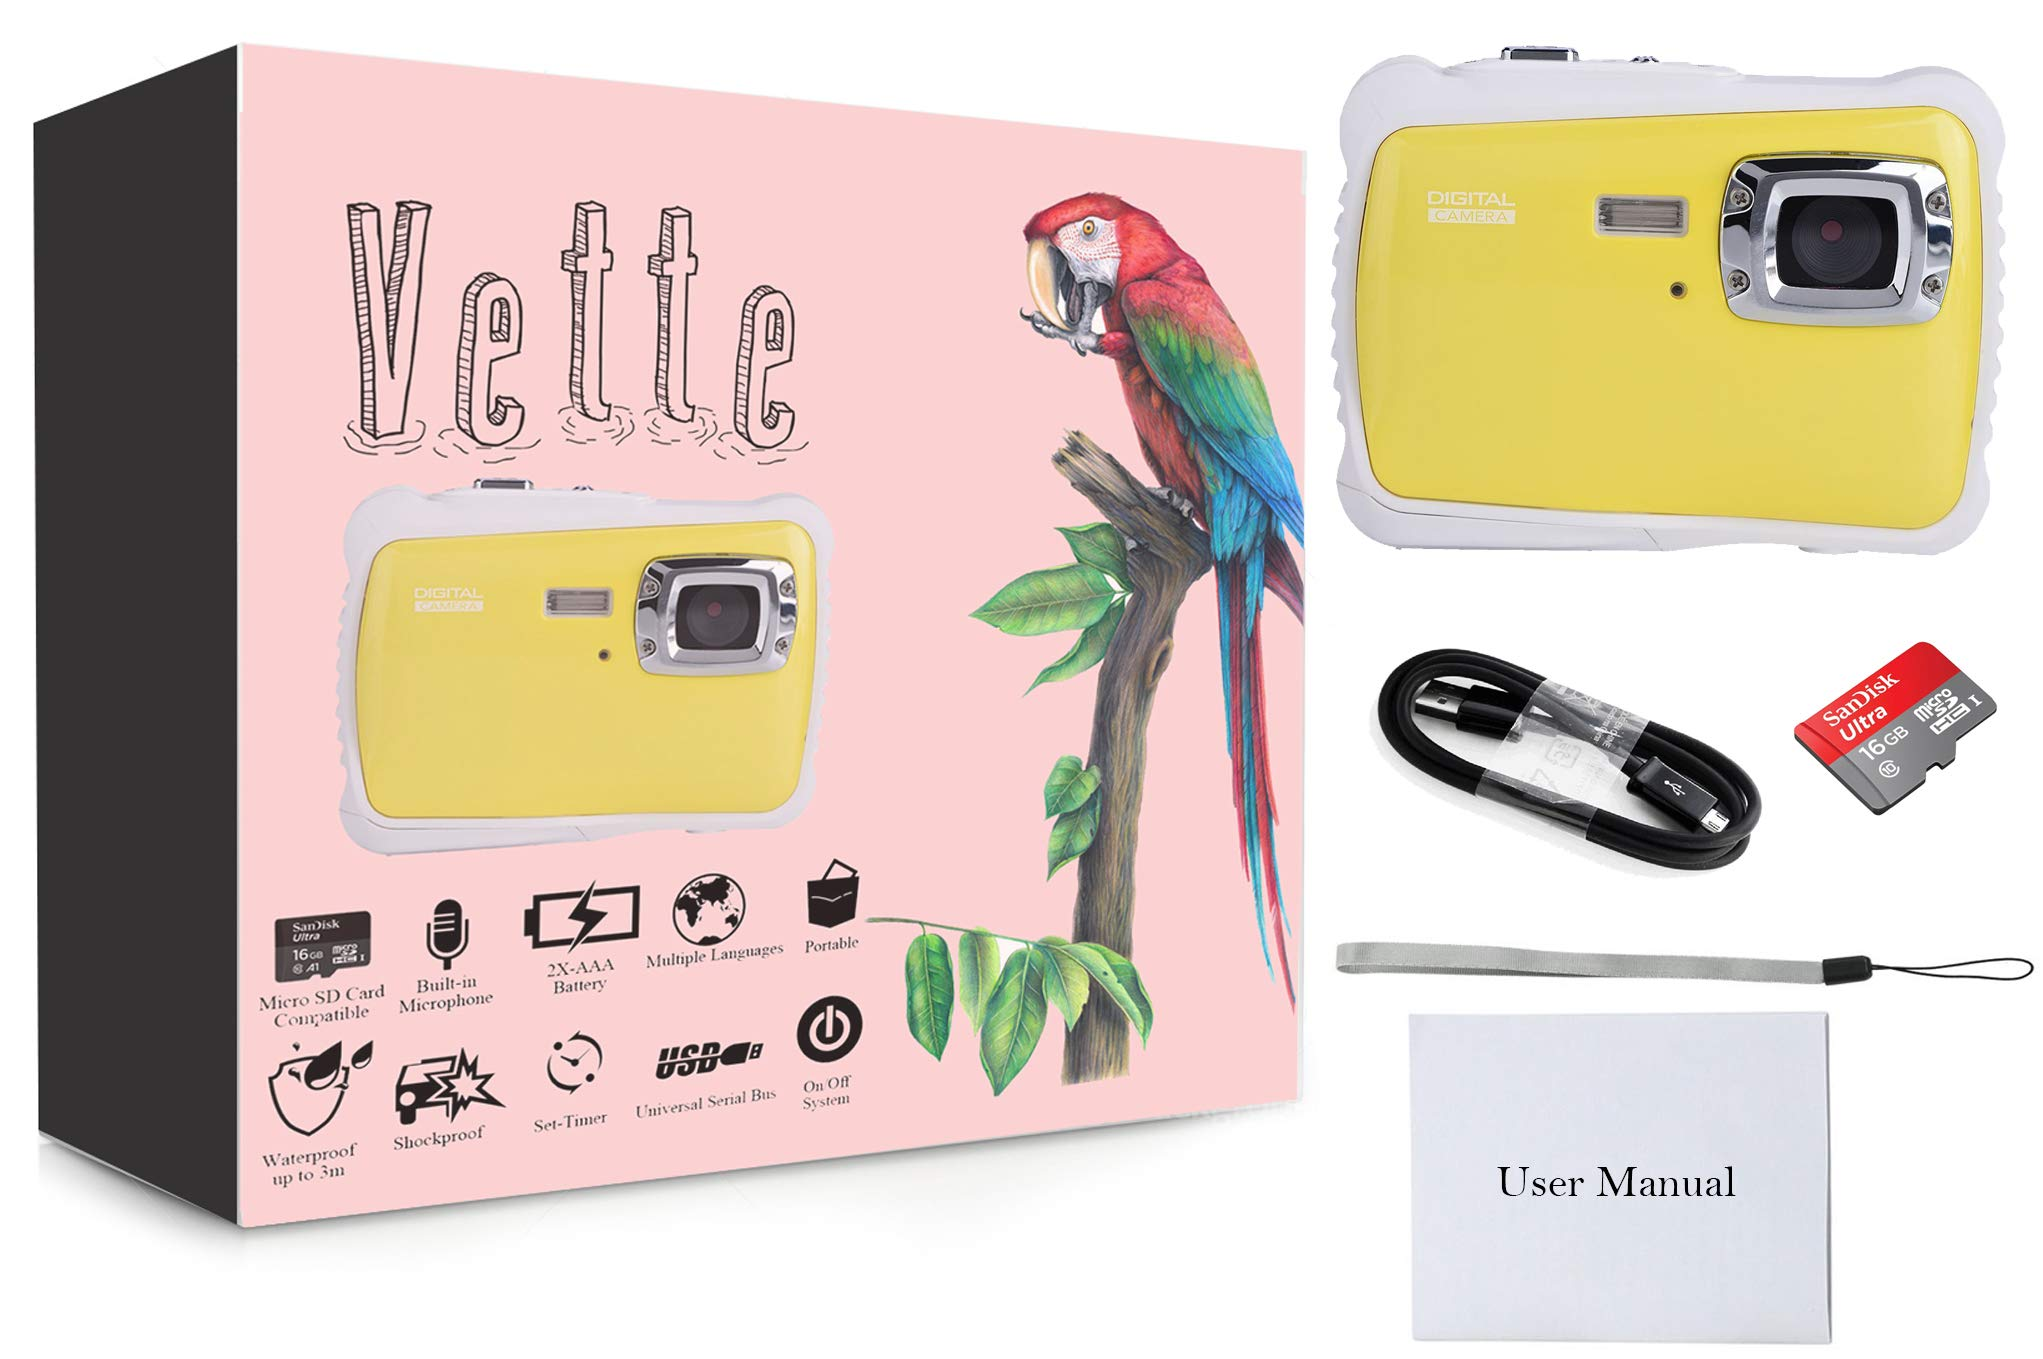 Vetté Digital Camera for Kids with 16GB MicroSD Card Included - Kids Camera Waterproof - 4X Zoom, up to 12MP, 720 HD Underwater Video Quality, TFT LCD Screen for Kids (Yellow) by Vetté (Image #6)